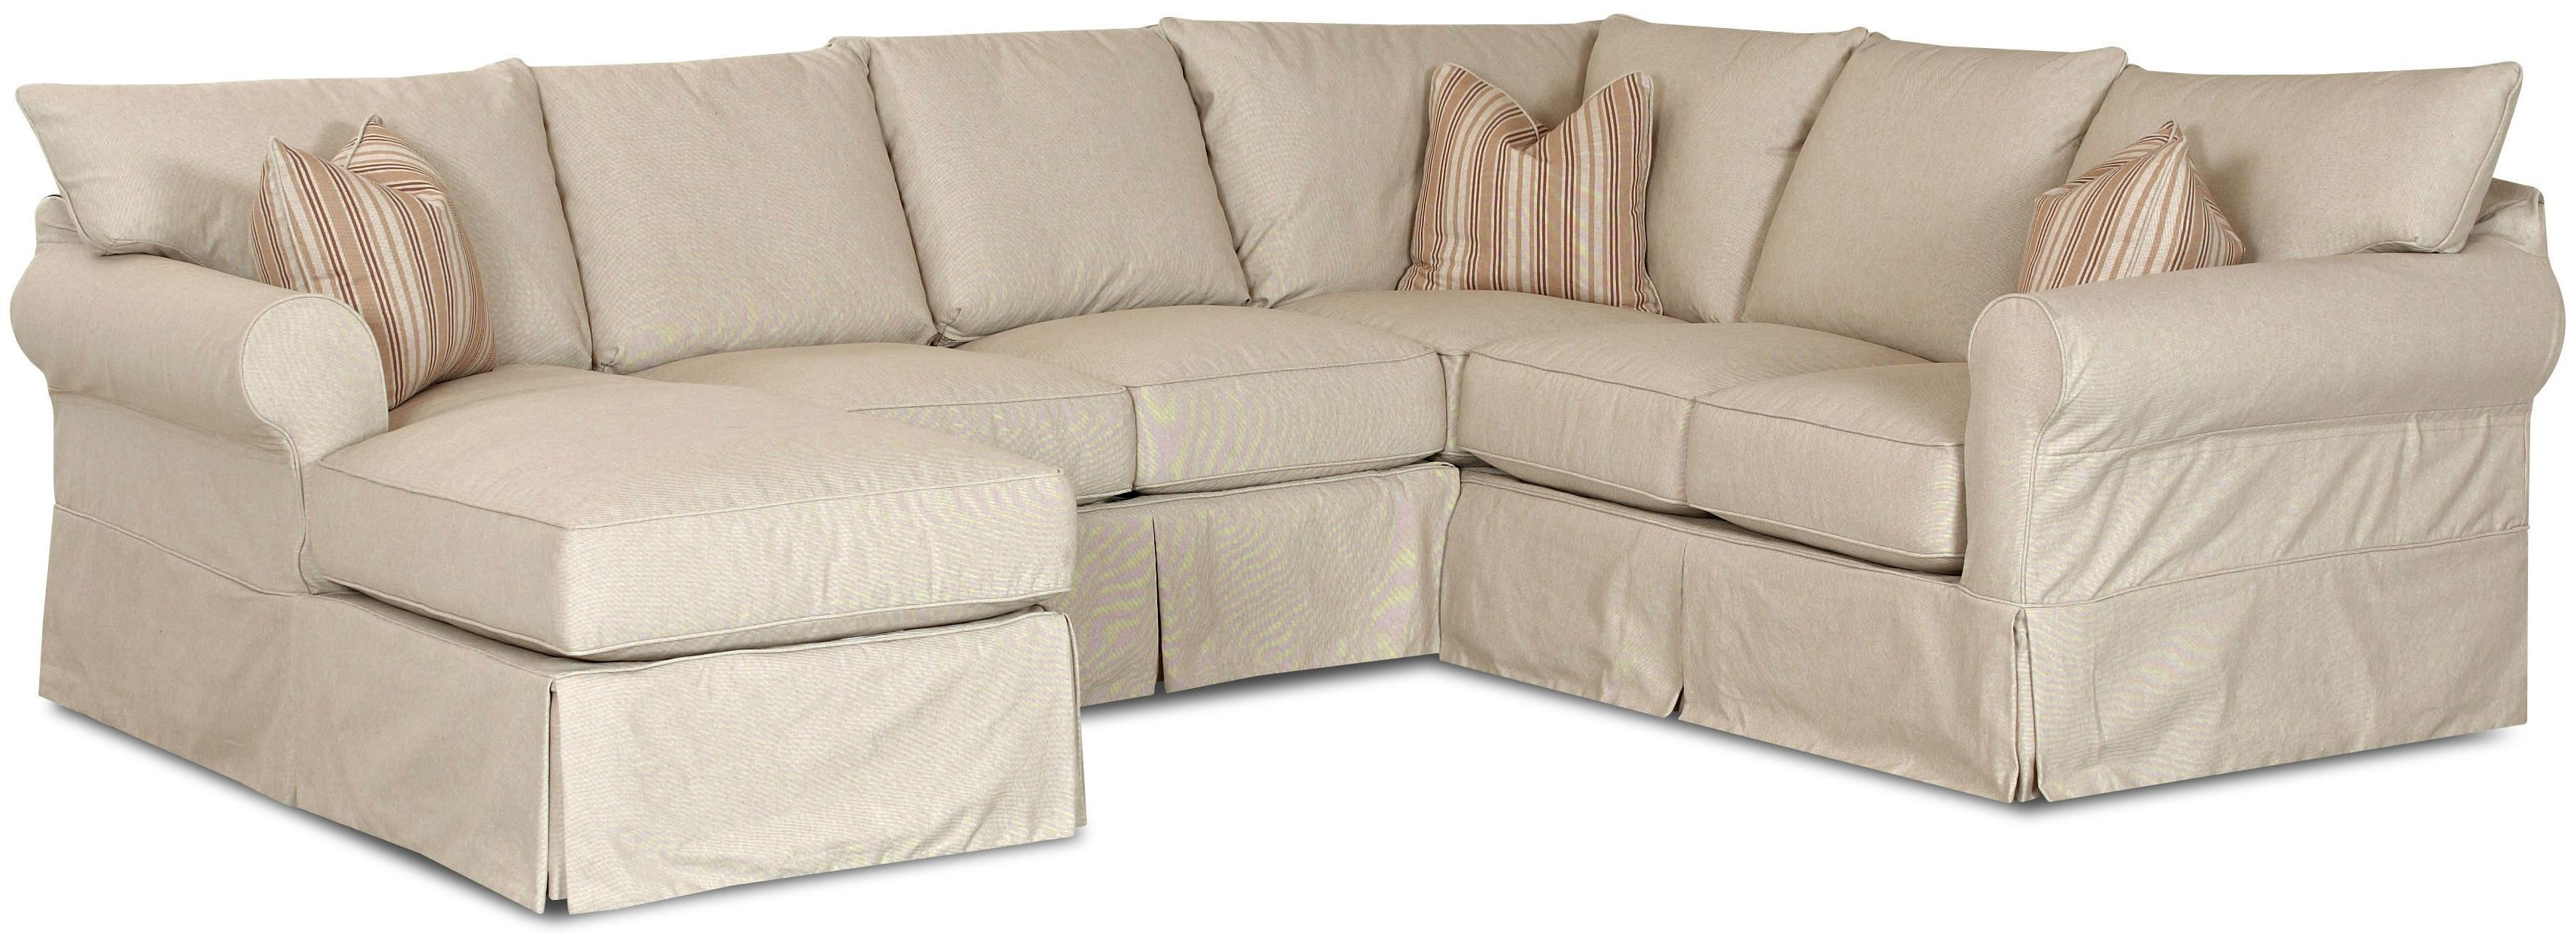 Furniture: Pretty Slipcovered Sectional Sofa For Comfy Your Living Regarding 3 Piece Sofa Slipcovers (Image 5 of 20)